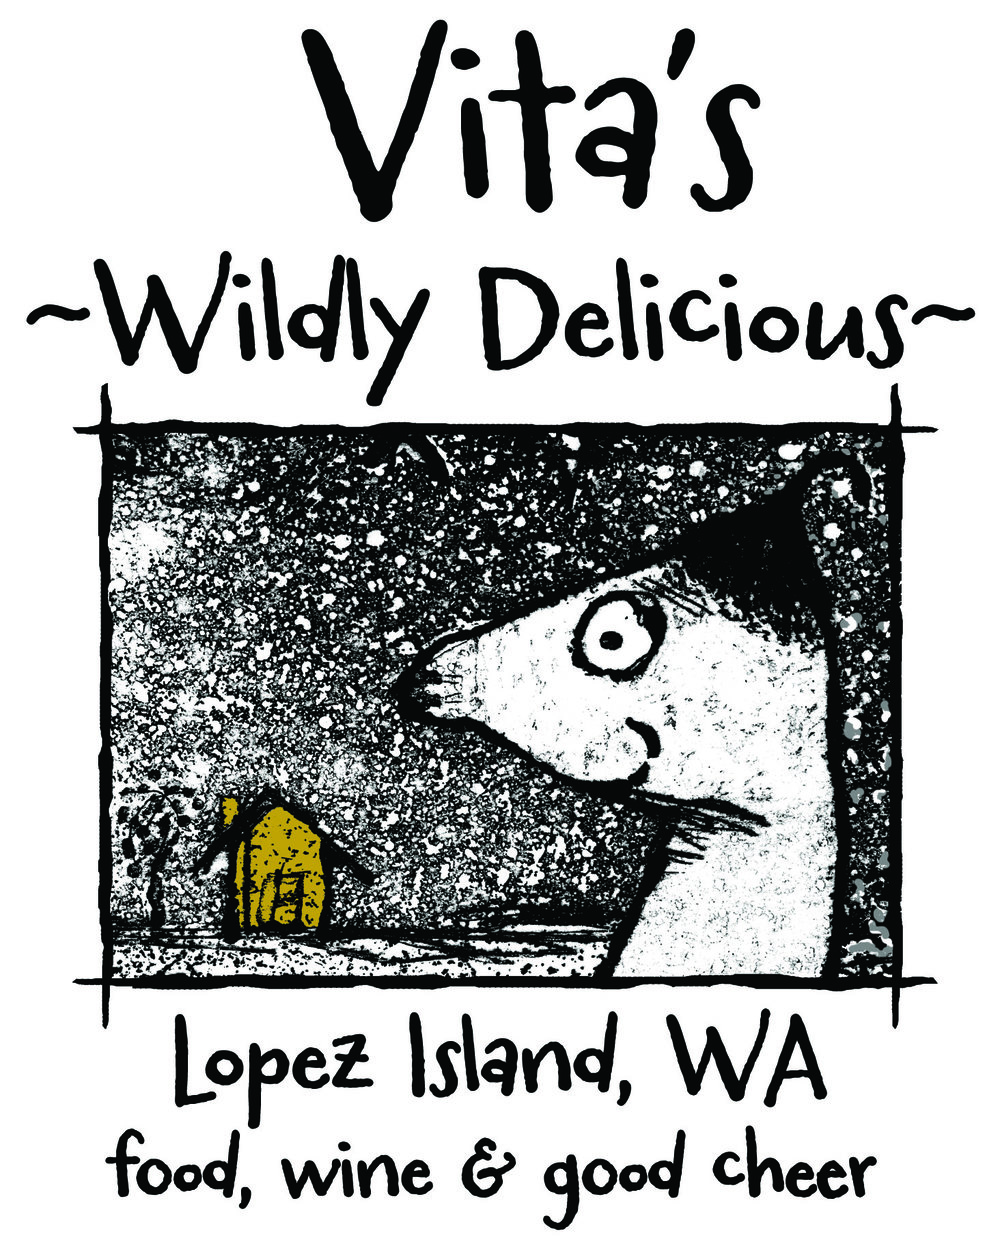 lopez island gourmet take out tapa organic beer wine wine tasting catering vita's